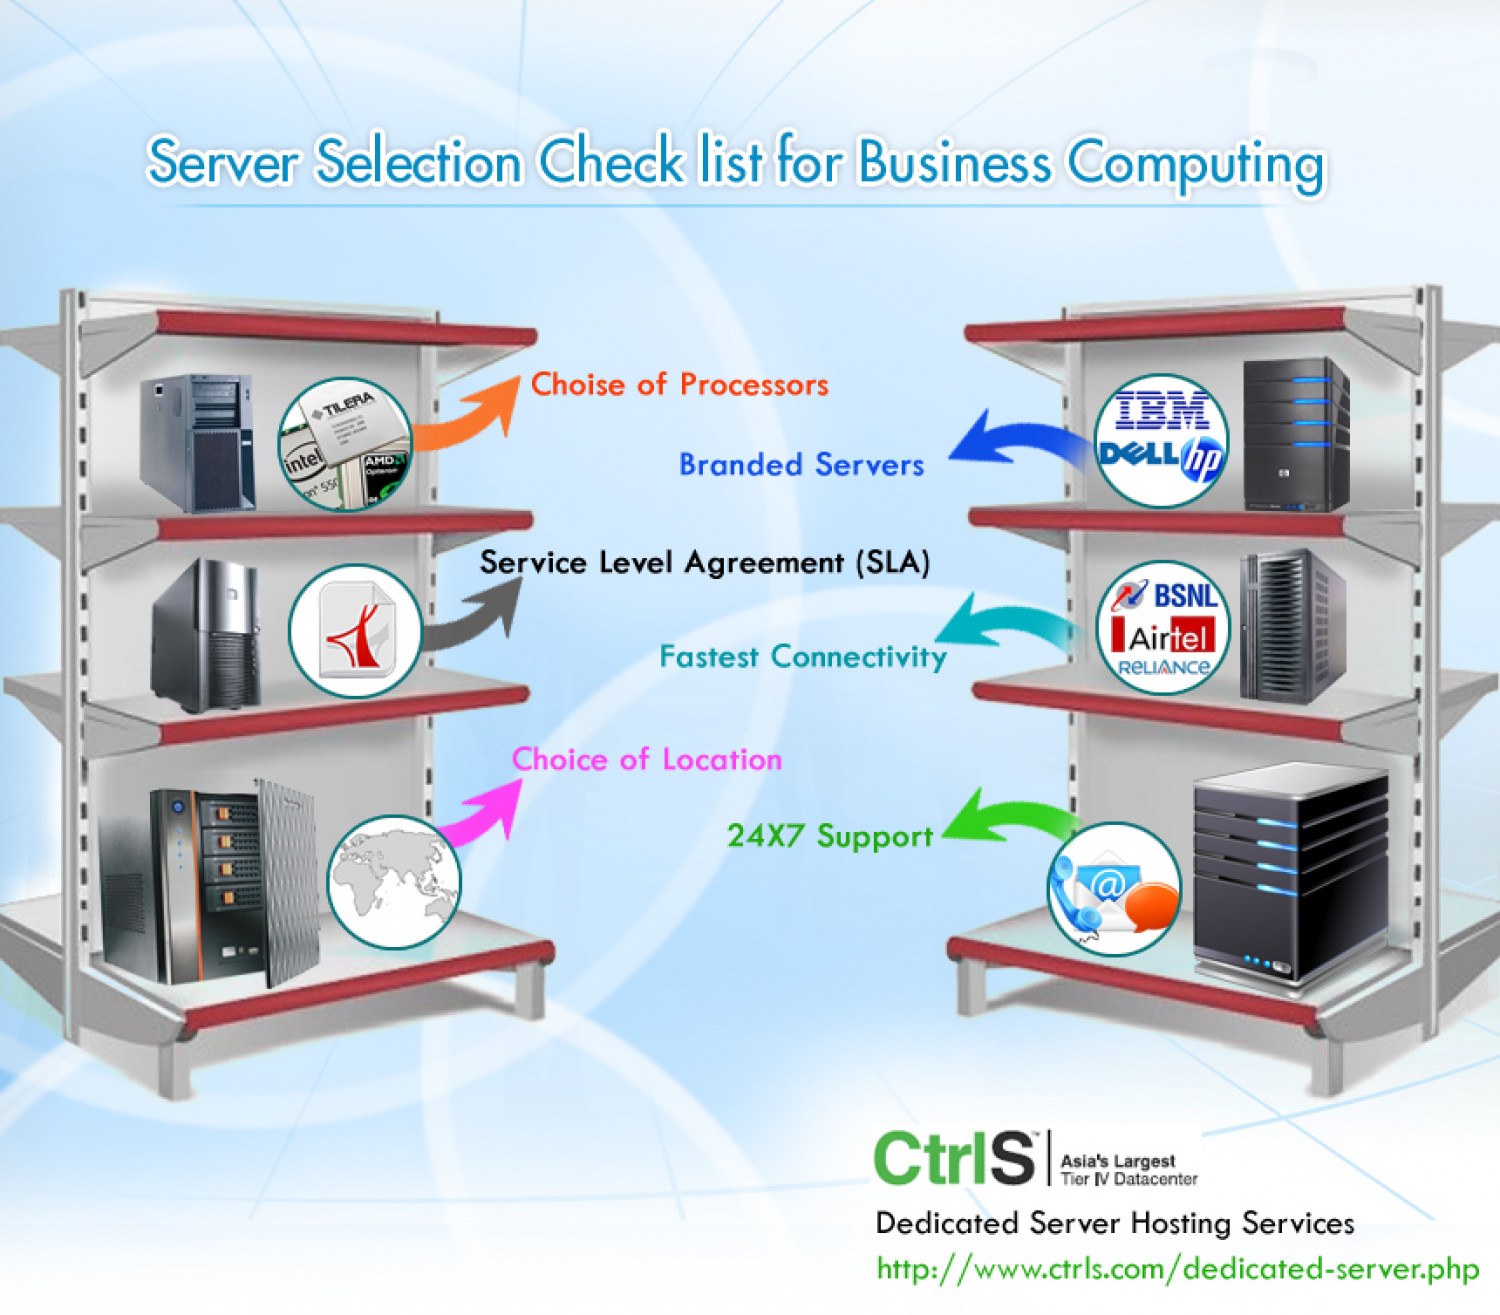 Server Selection Checklist for Business Computing Infographic